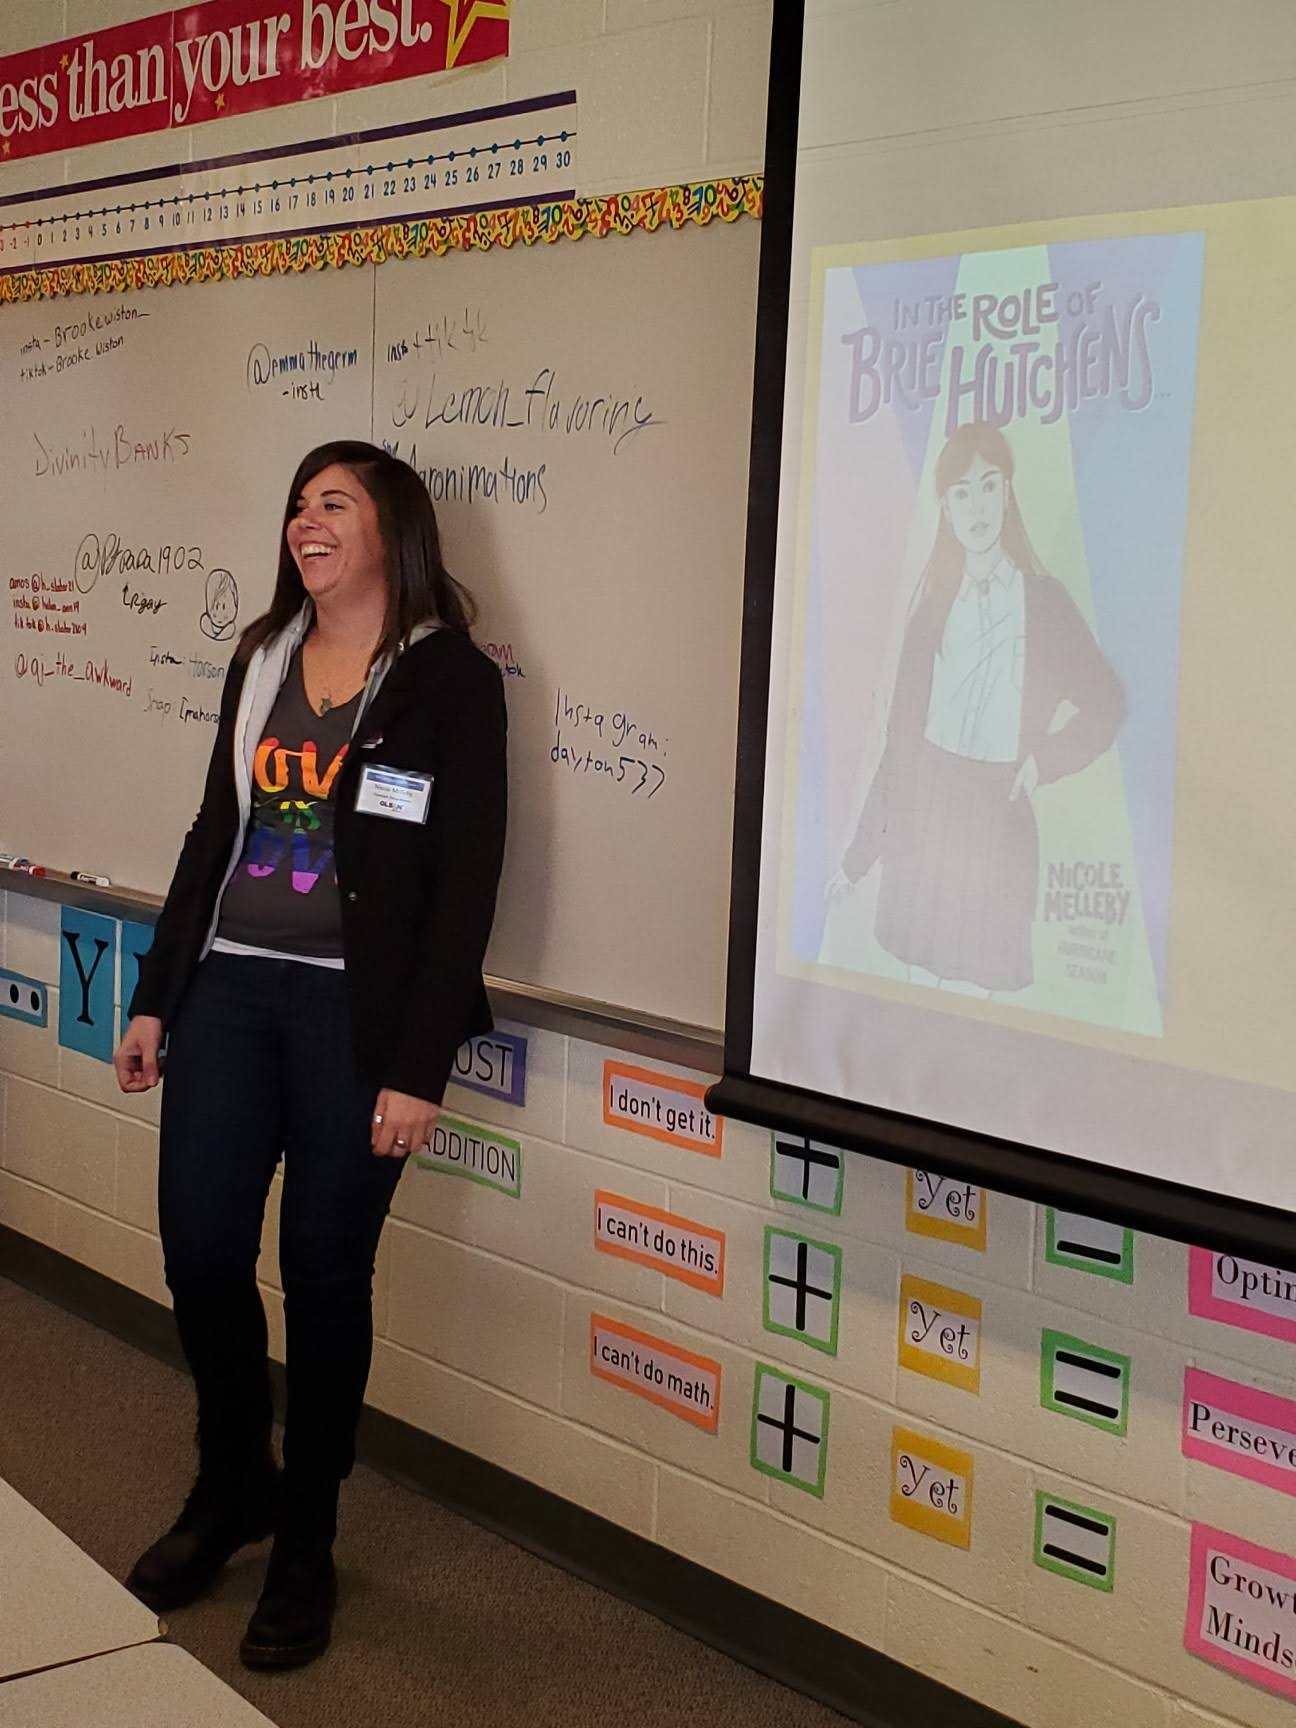 New Jersey author explores mental health, LGBTQ topics for young readers: 'Very much kid issues as well'